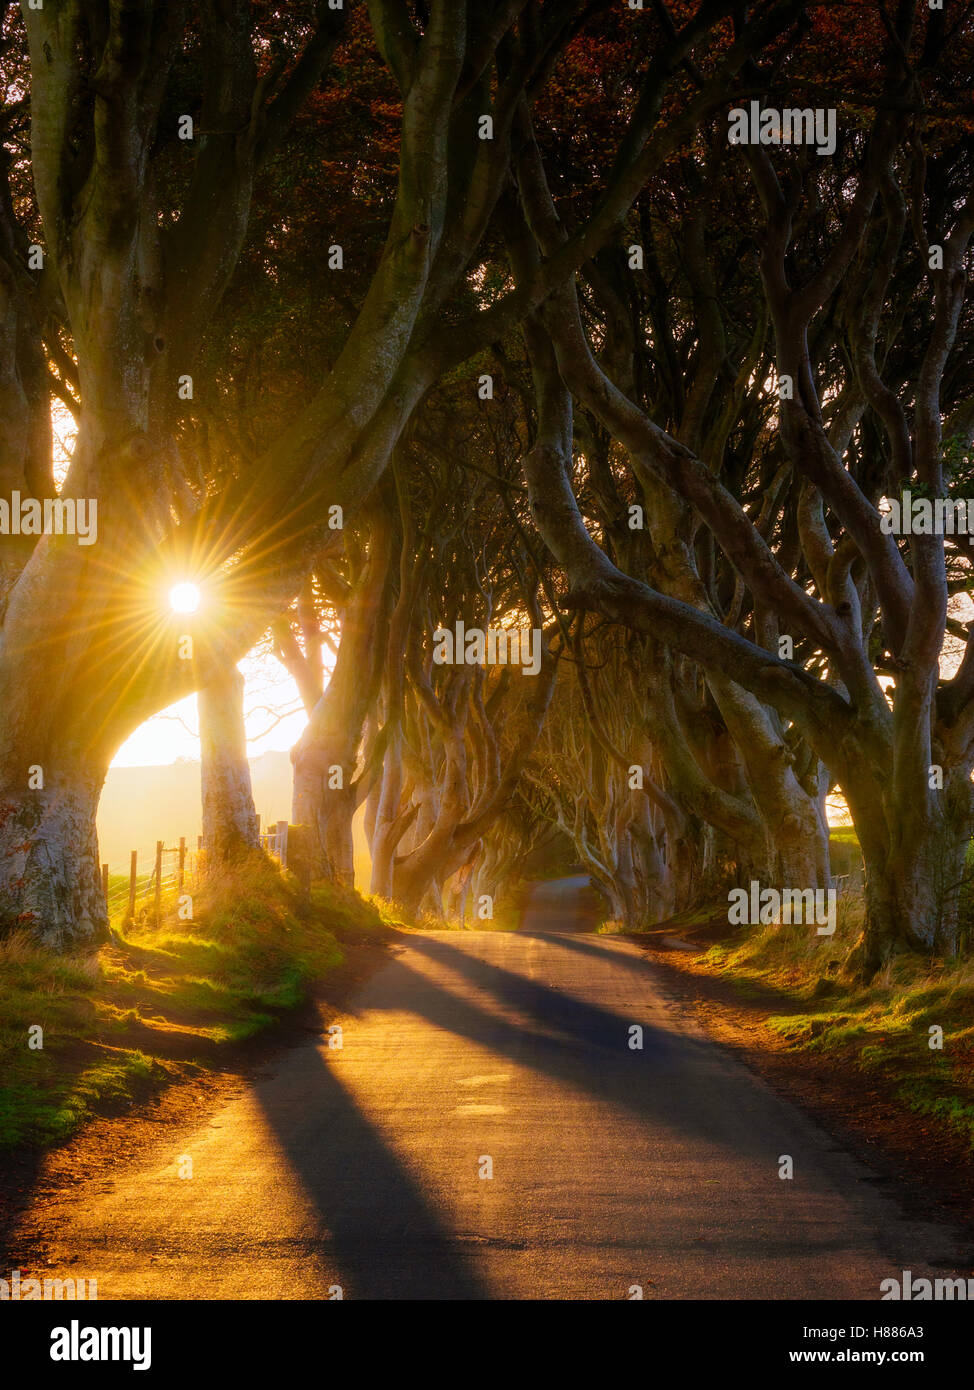 The Dark Hedges - Atmospheric  tunnel-like avenue of intertwined beech trees. - Stock Image